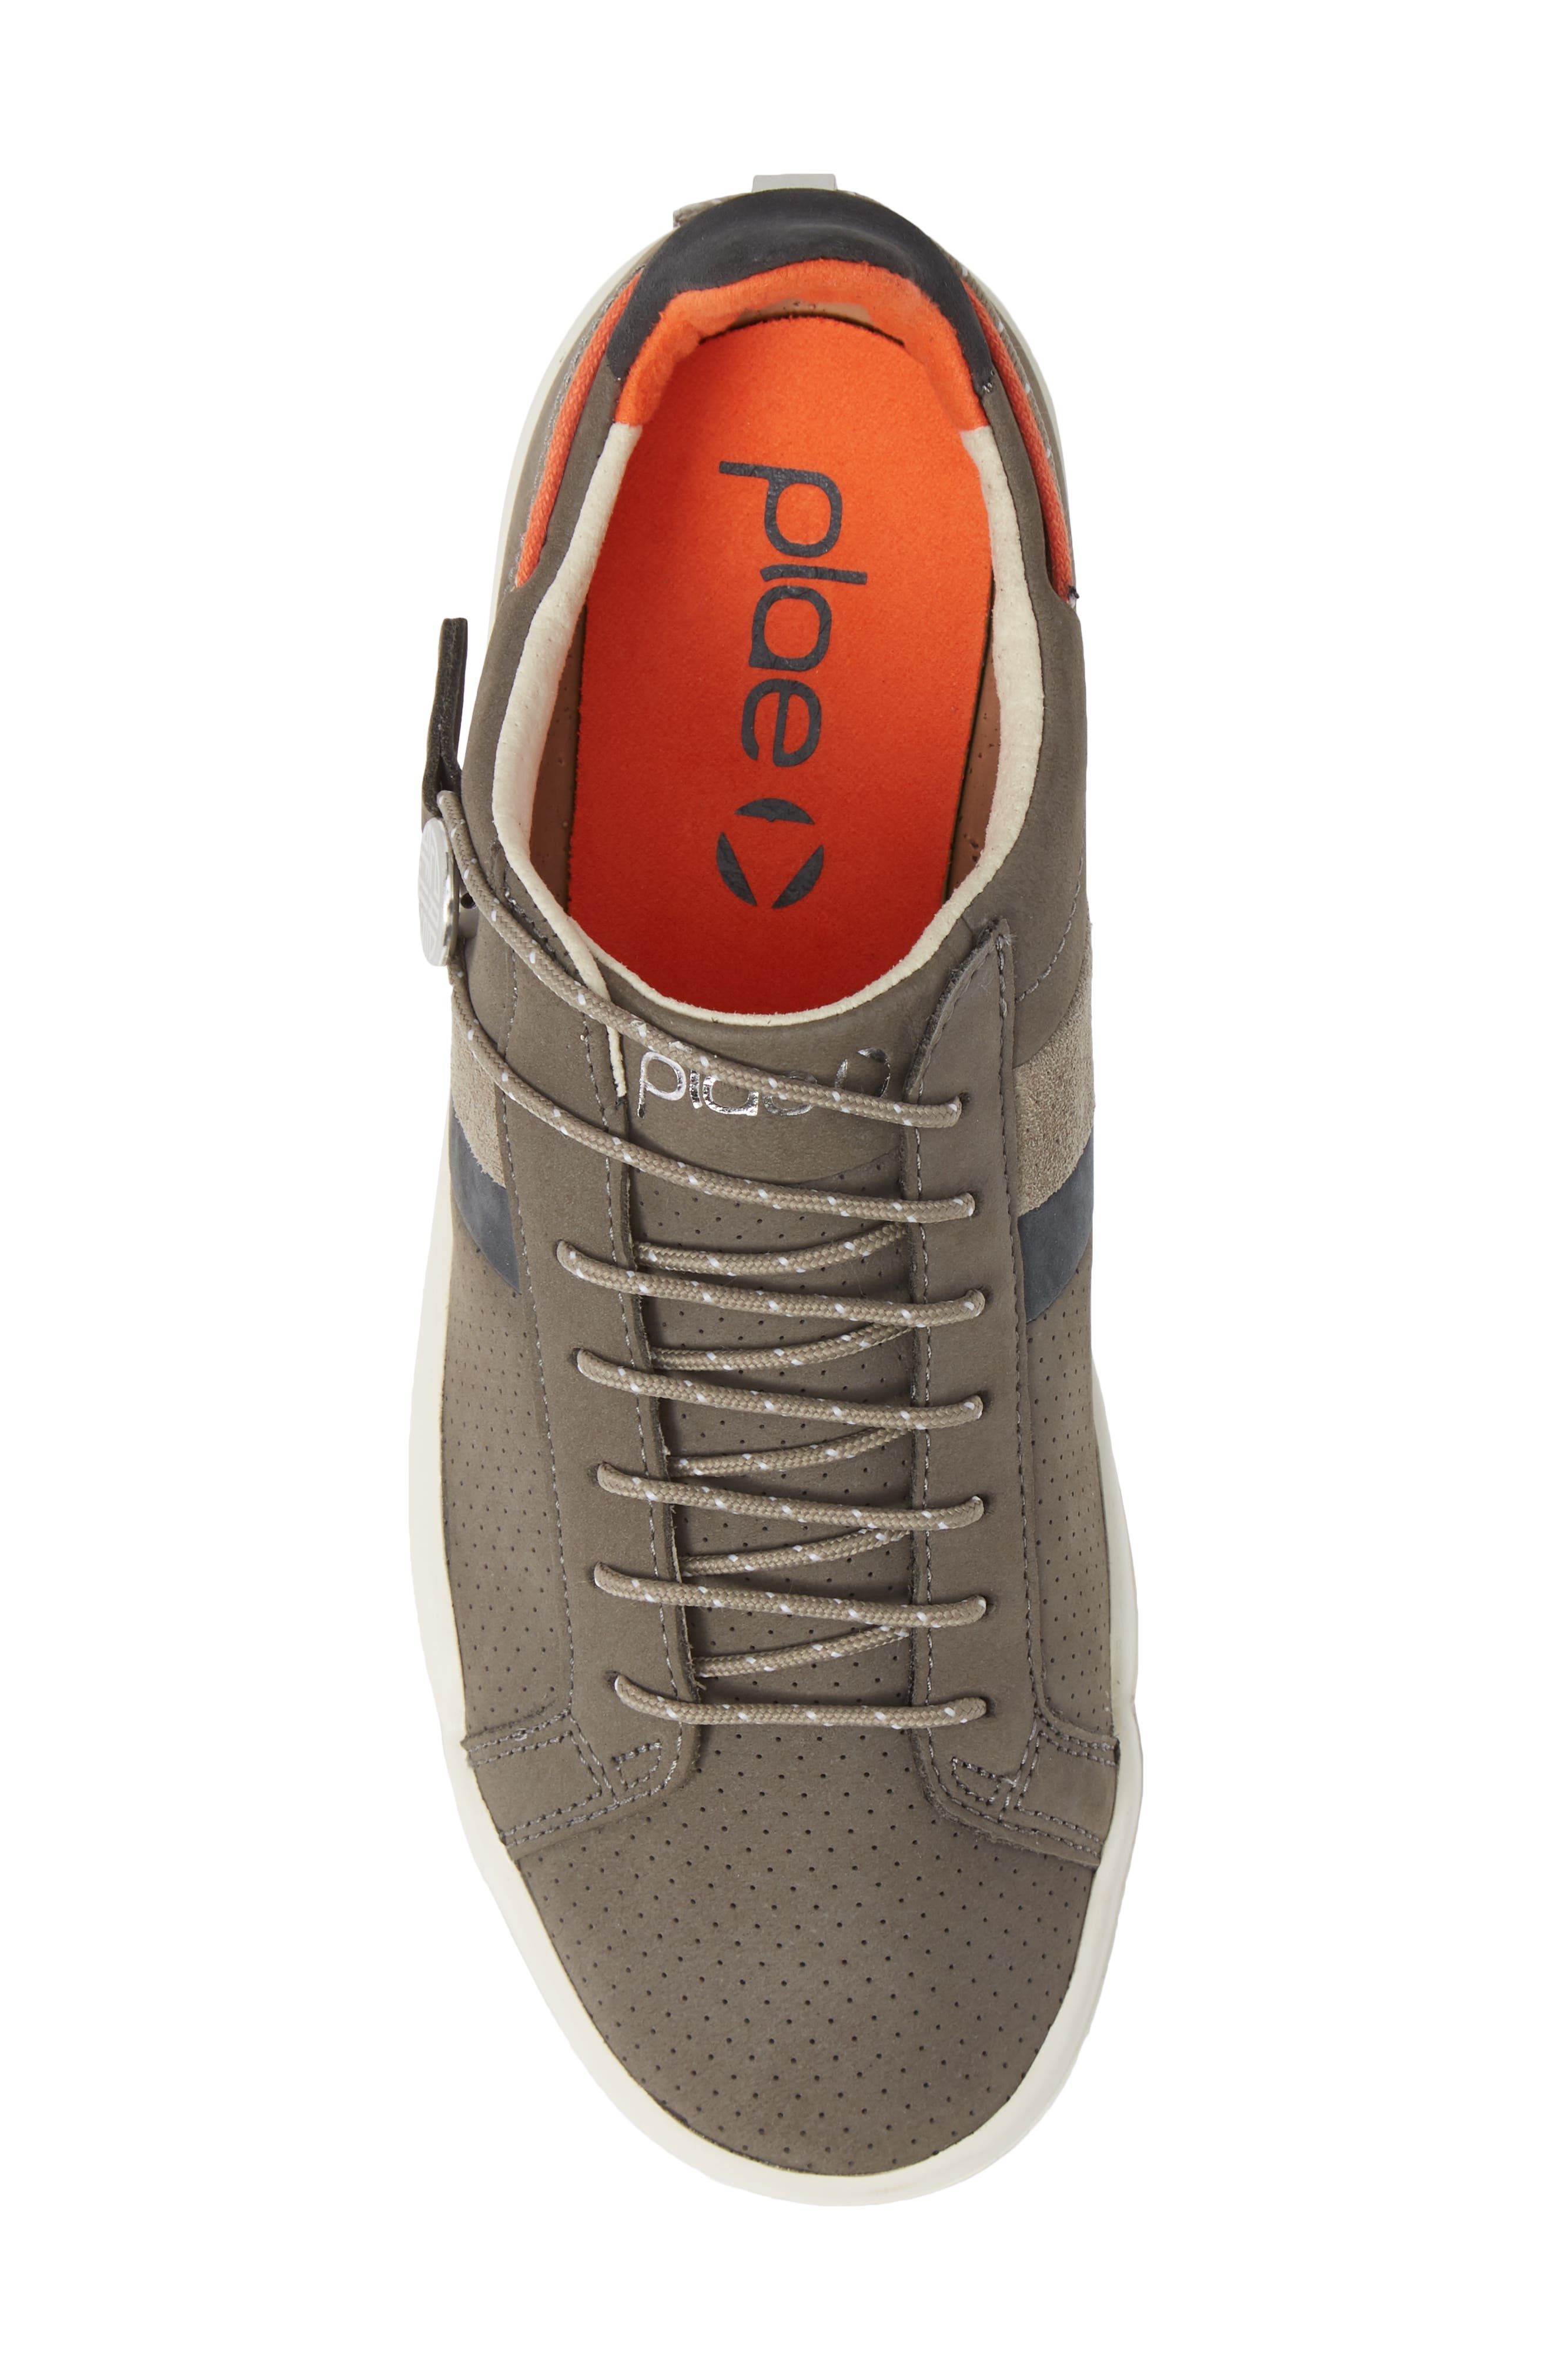 Mulberry Sneaker,                             Alternate thumbnail 5, color,                             GREY NUBUCK LEATHER